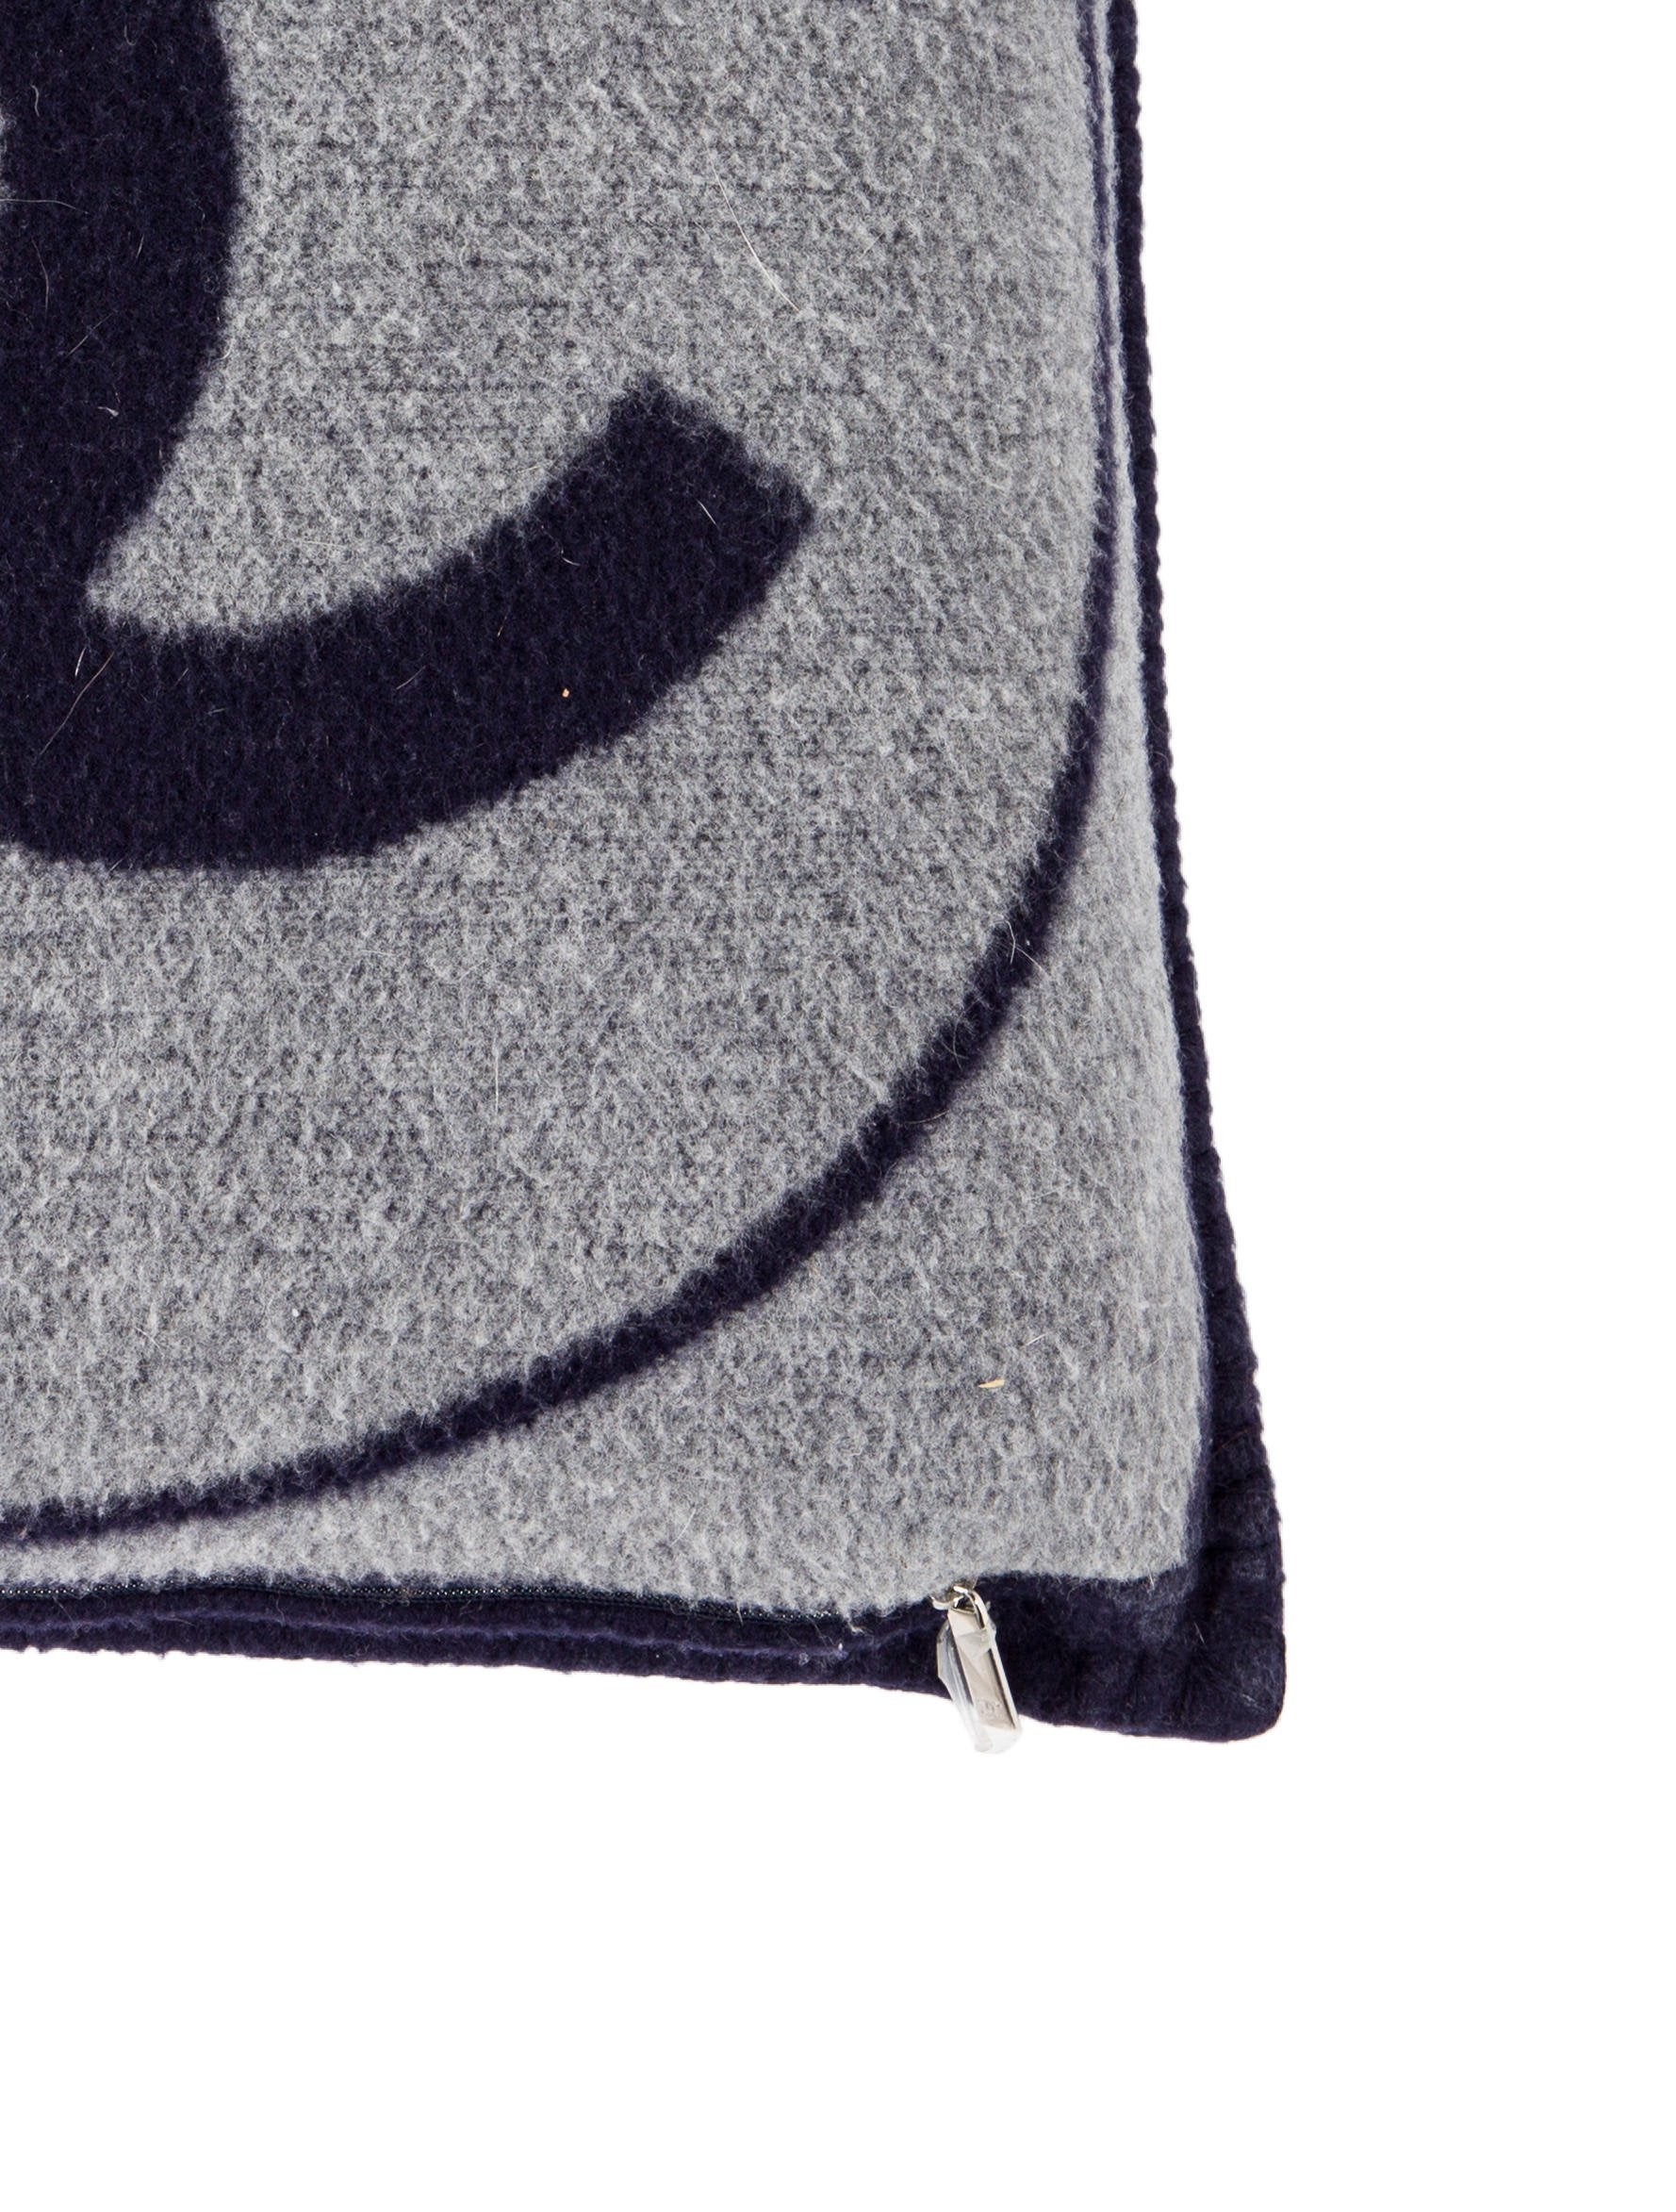 Grey Wool Throw Pillow : Chanel CC Wool Throw Pillow - Bedding And Bath - CHA219084 The RealReal